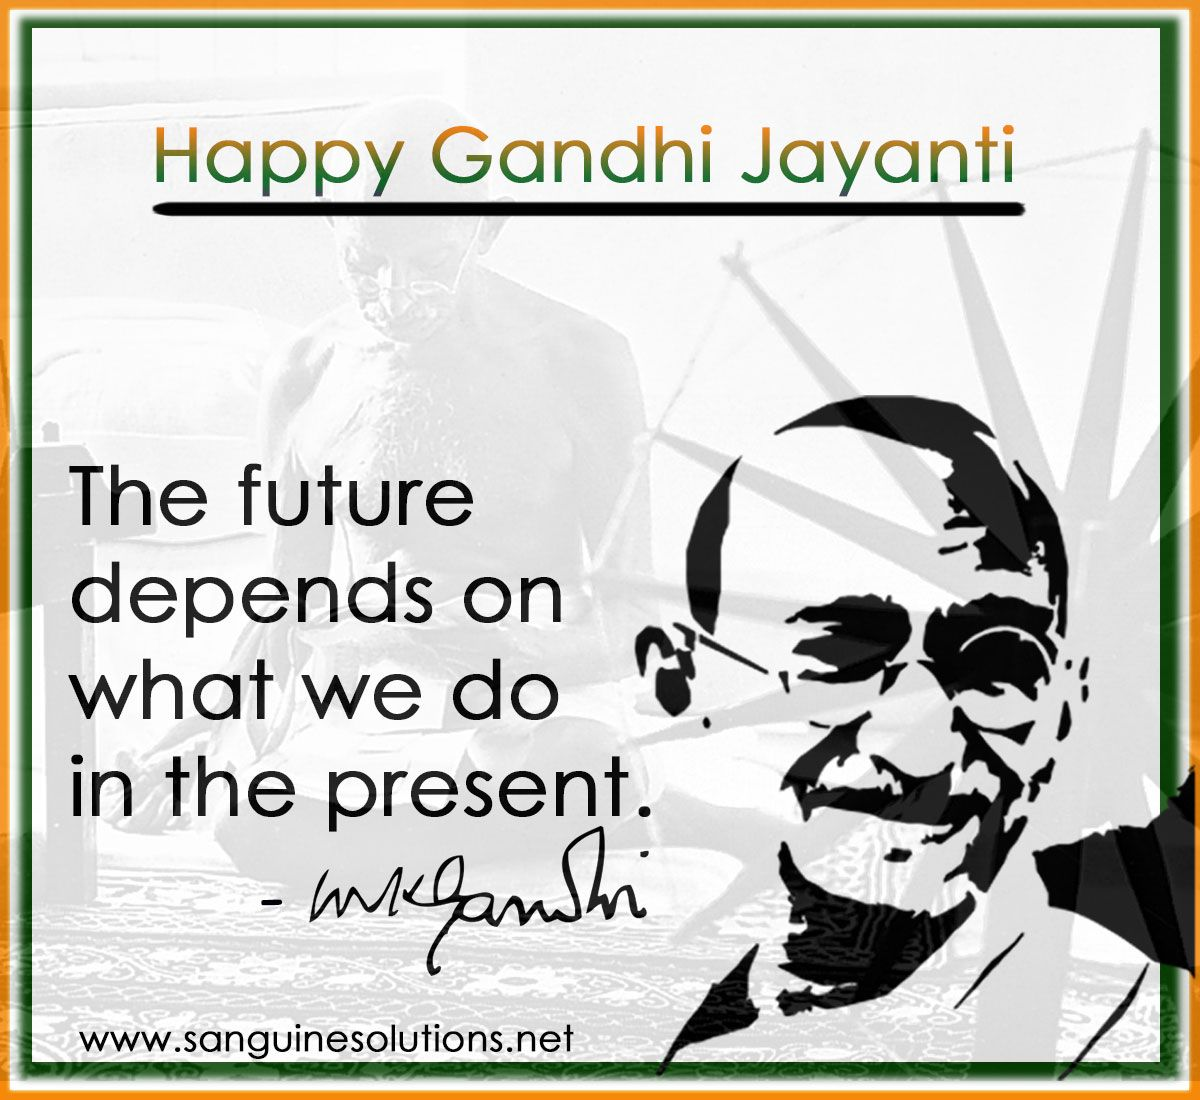 Happy Gandhi Jayanti To All From Sanguine Solutions